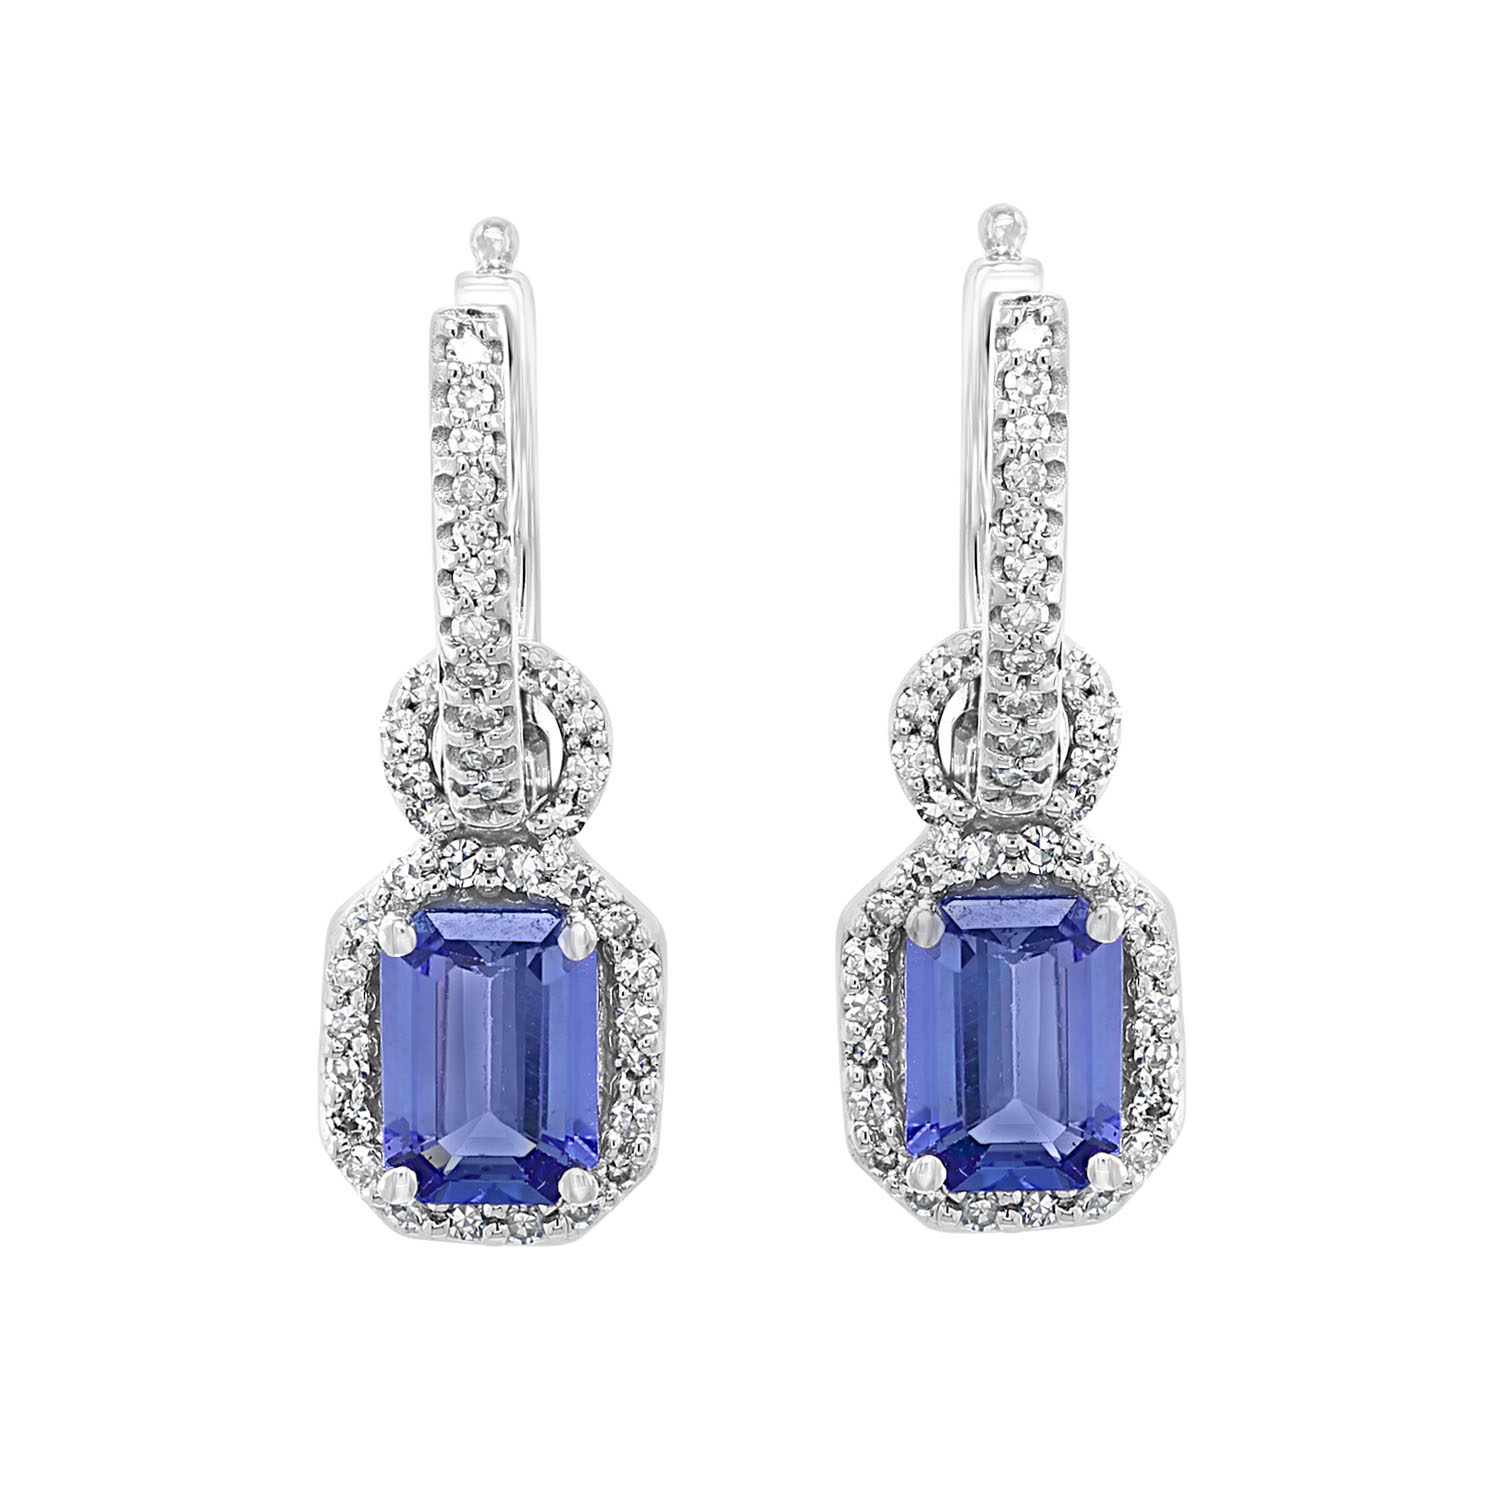 14K White Gold Tanzanite & Diamond Earrings